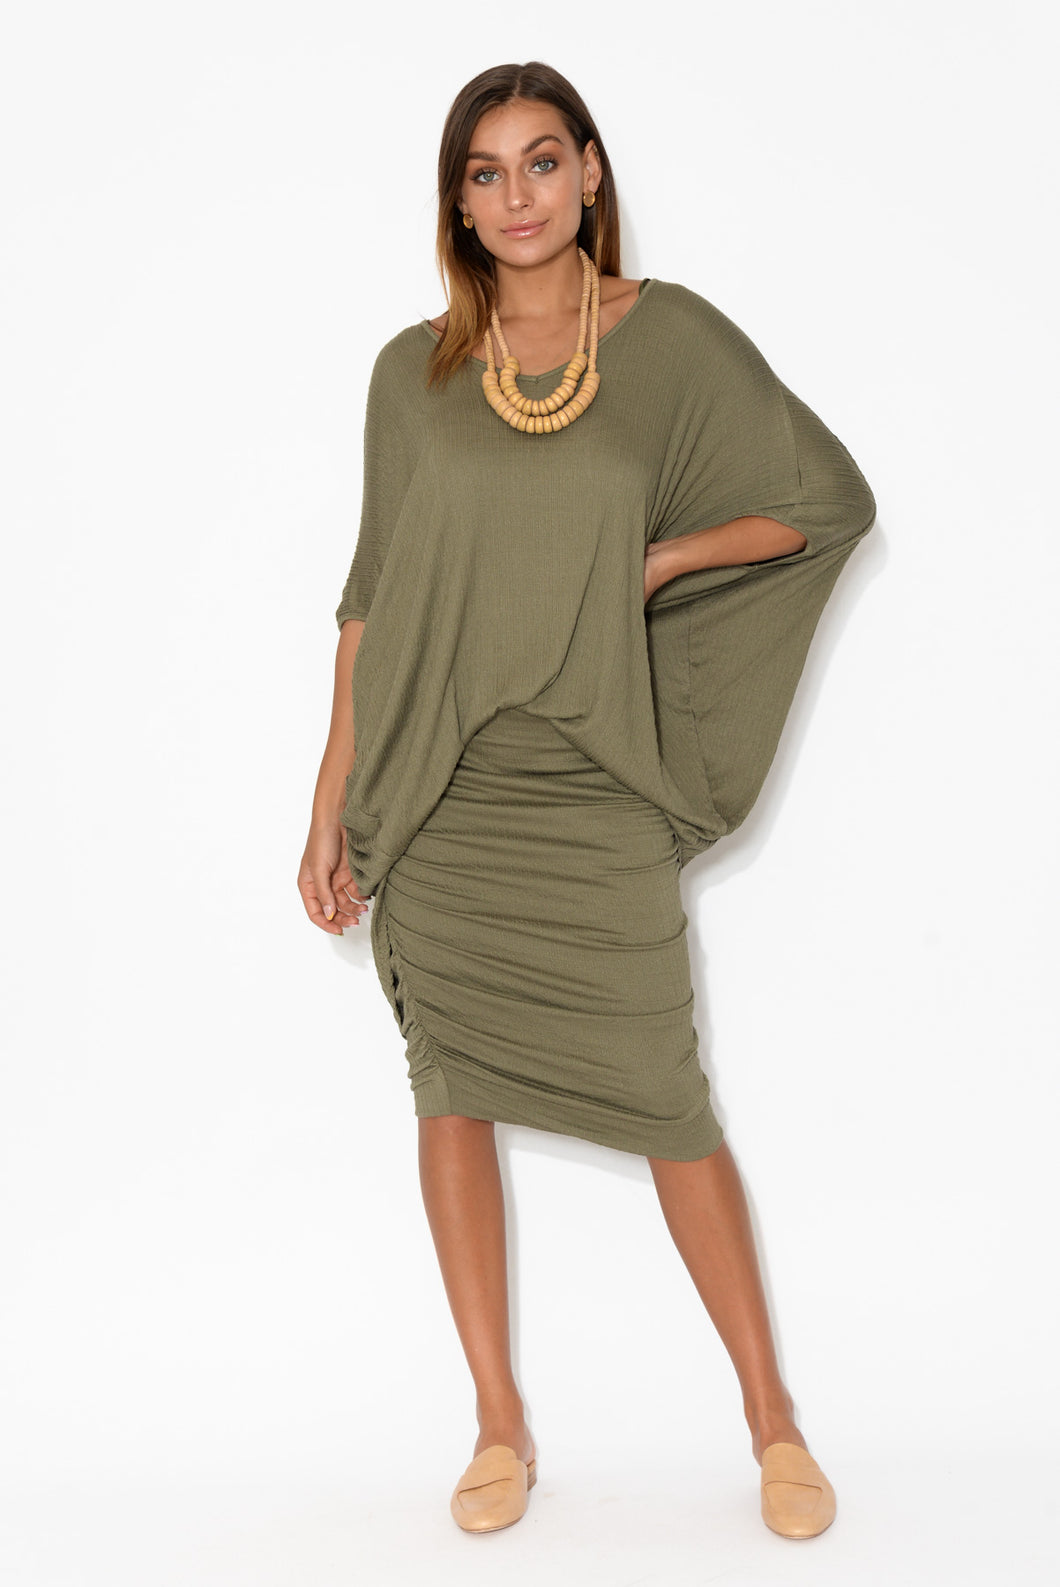 Emory Khaki Textured Batwing Top